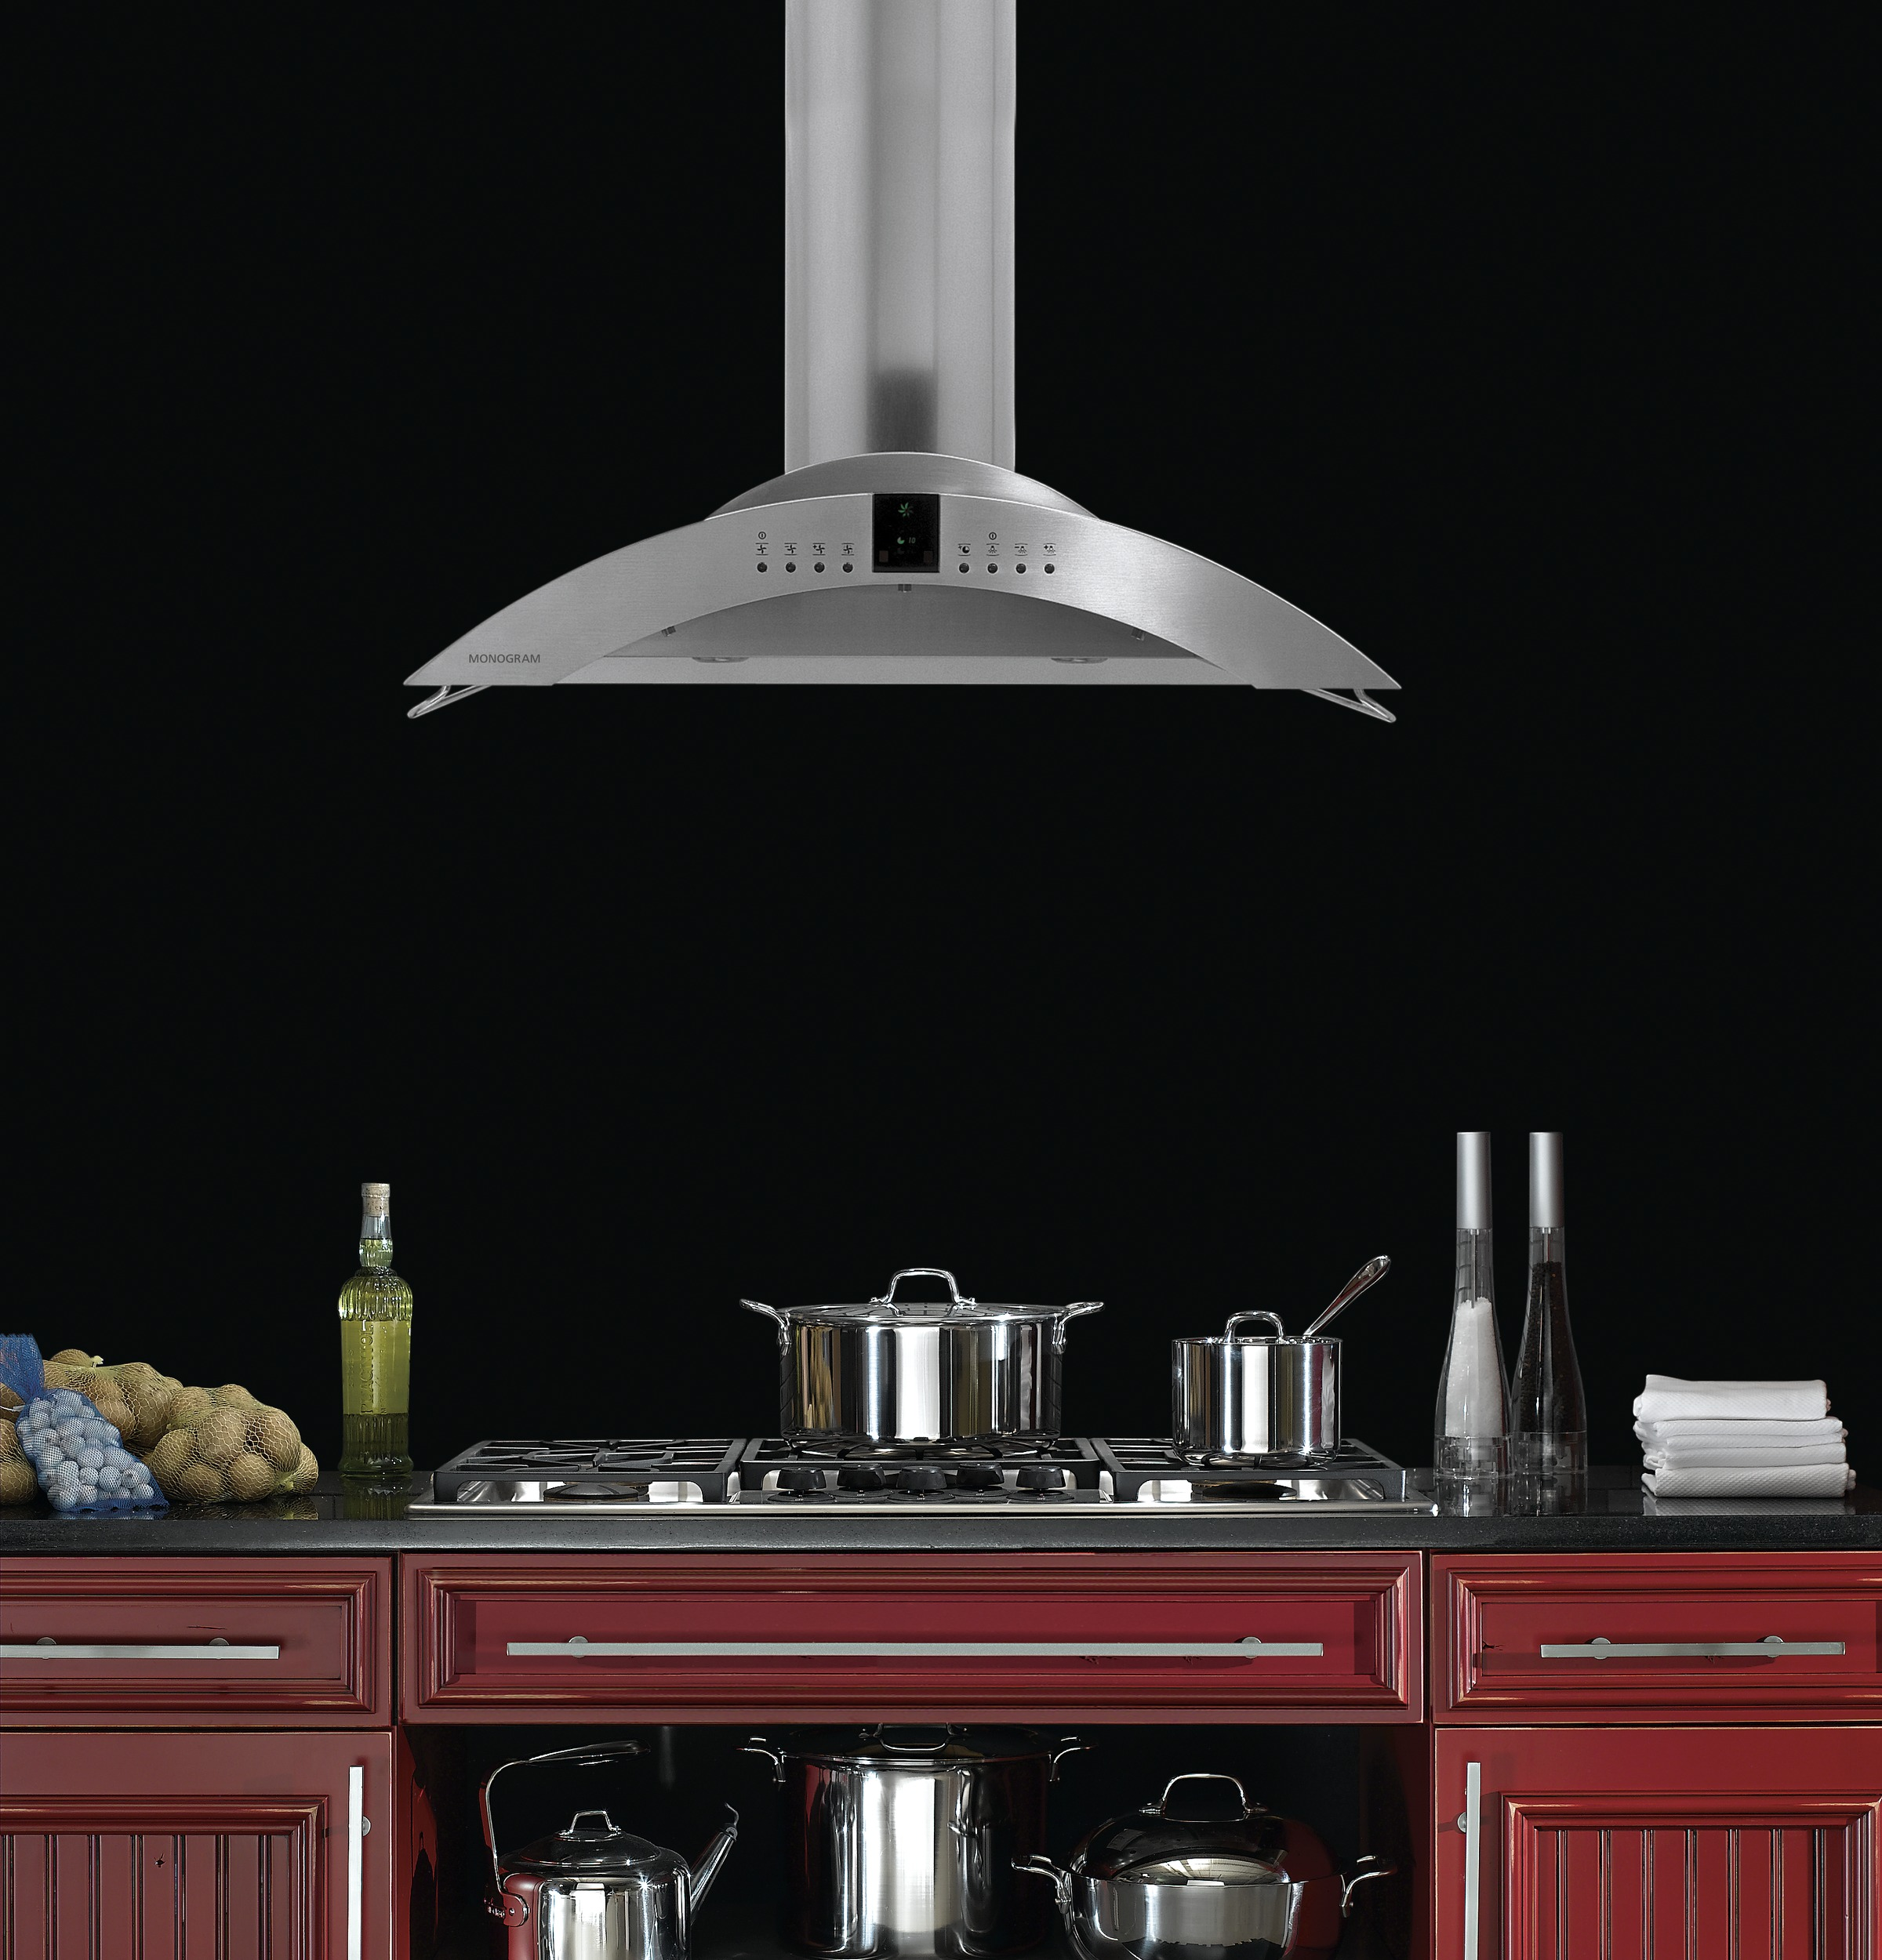 o outdoor slide range nature decorative cover vent professional kitchen ceiling kitchens hoods fans full for steel cooktop inch designs extractors fan stove vents of hood with and small out in filters black exhaust large ventilation stainless size island islands